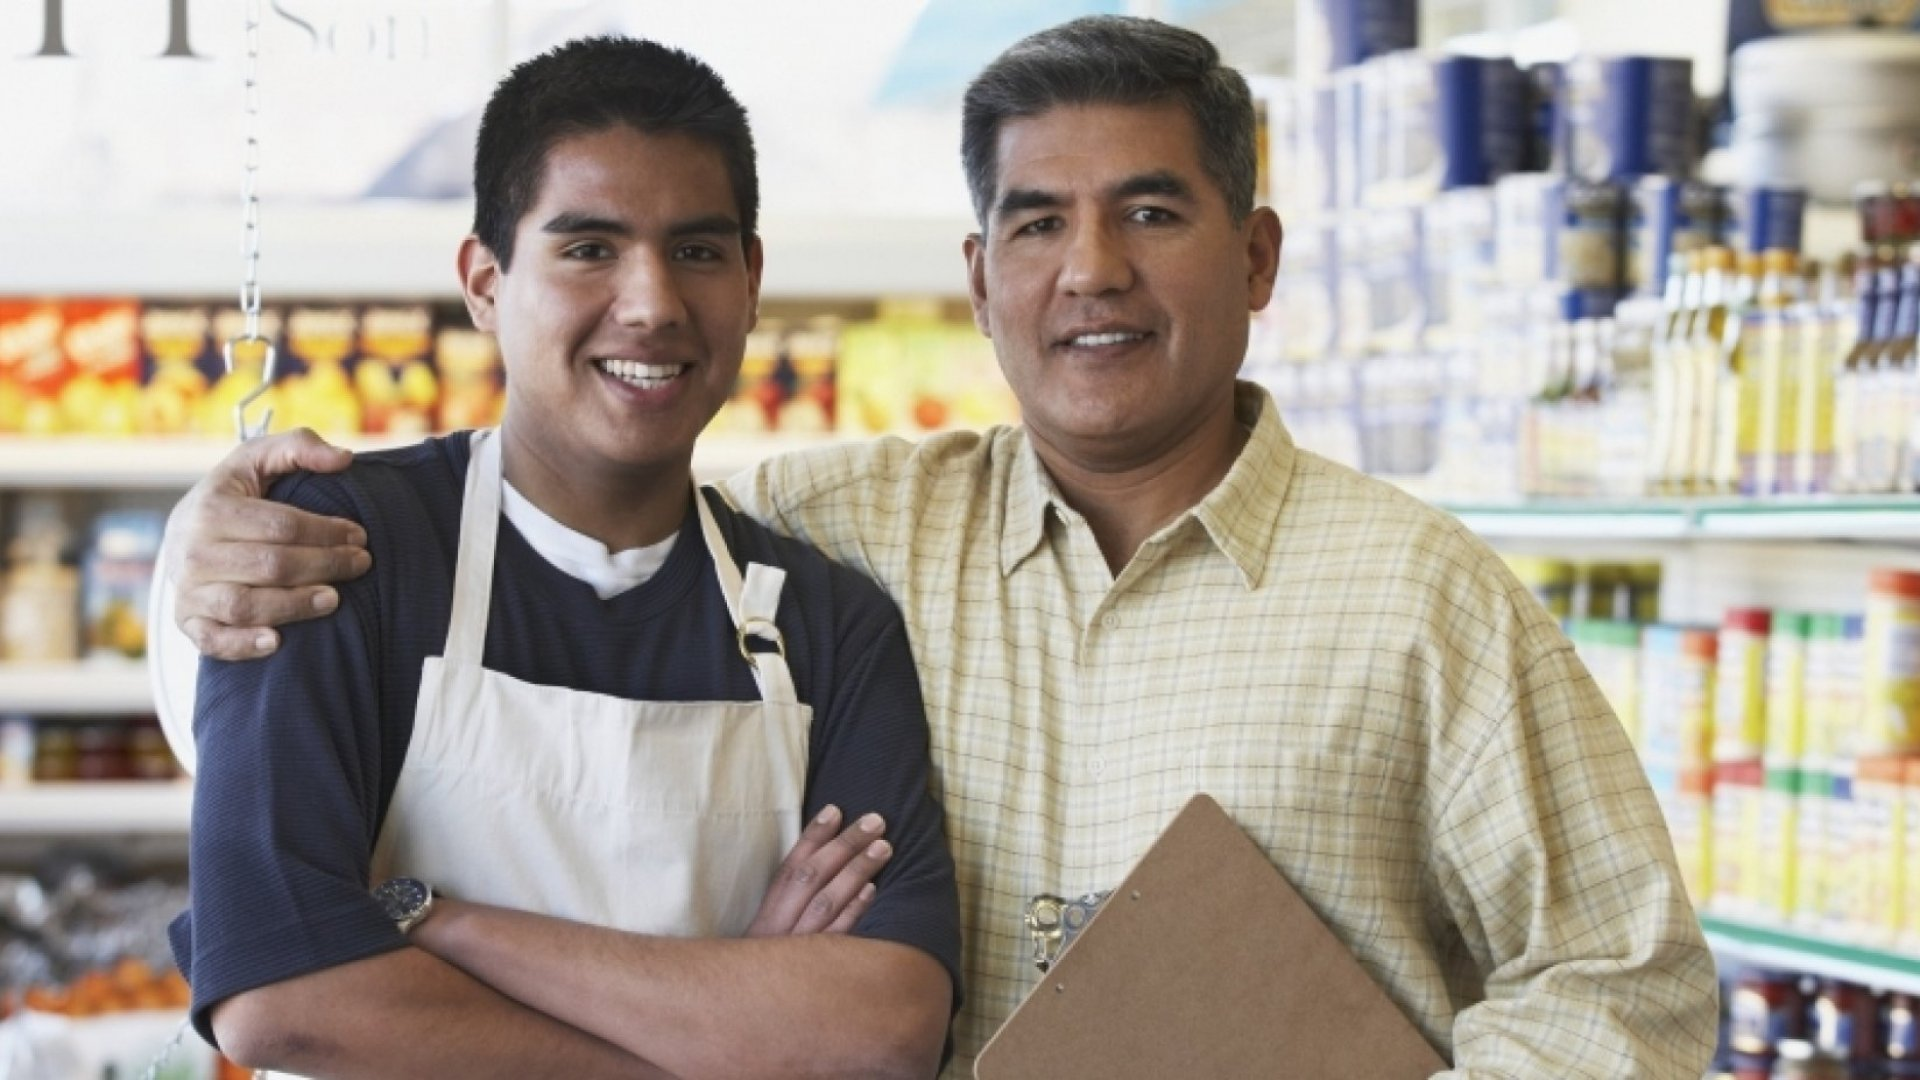 6 Ways to Succession-Proof Your Small Business